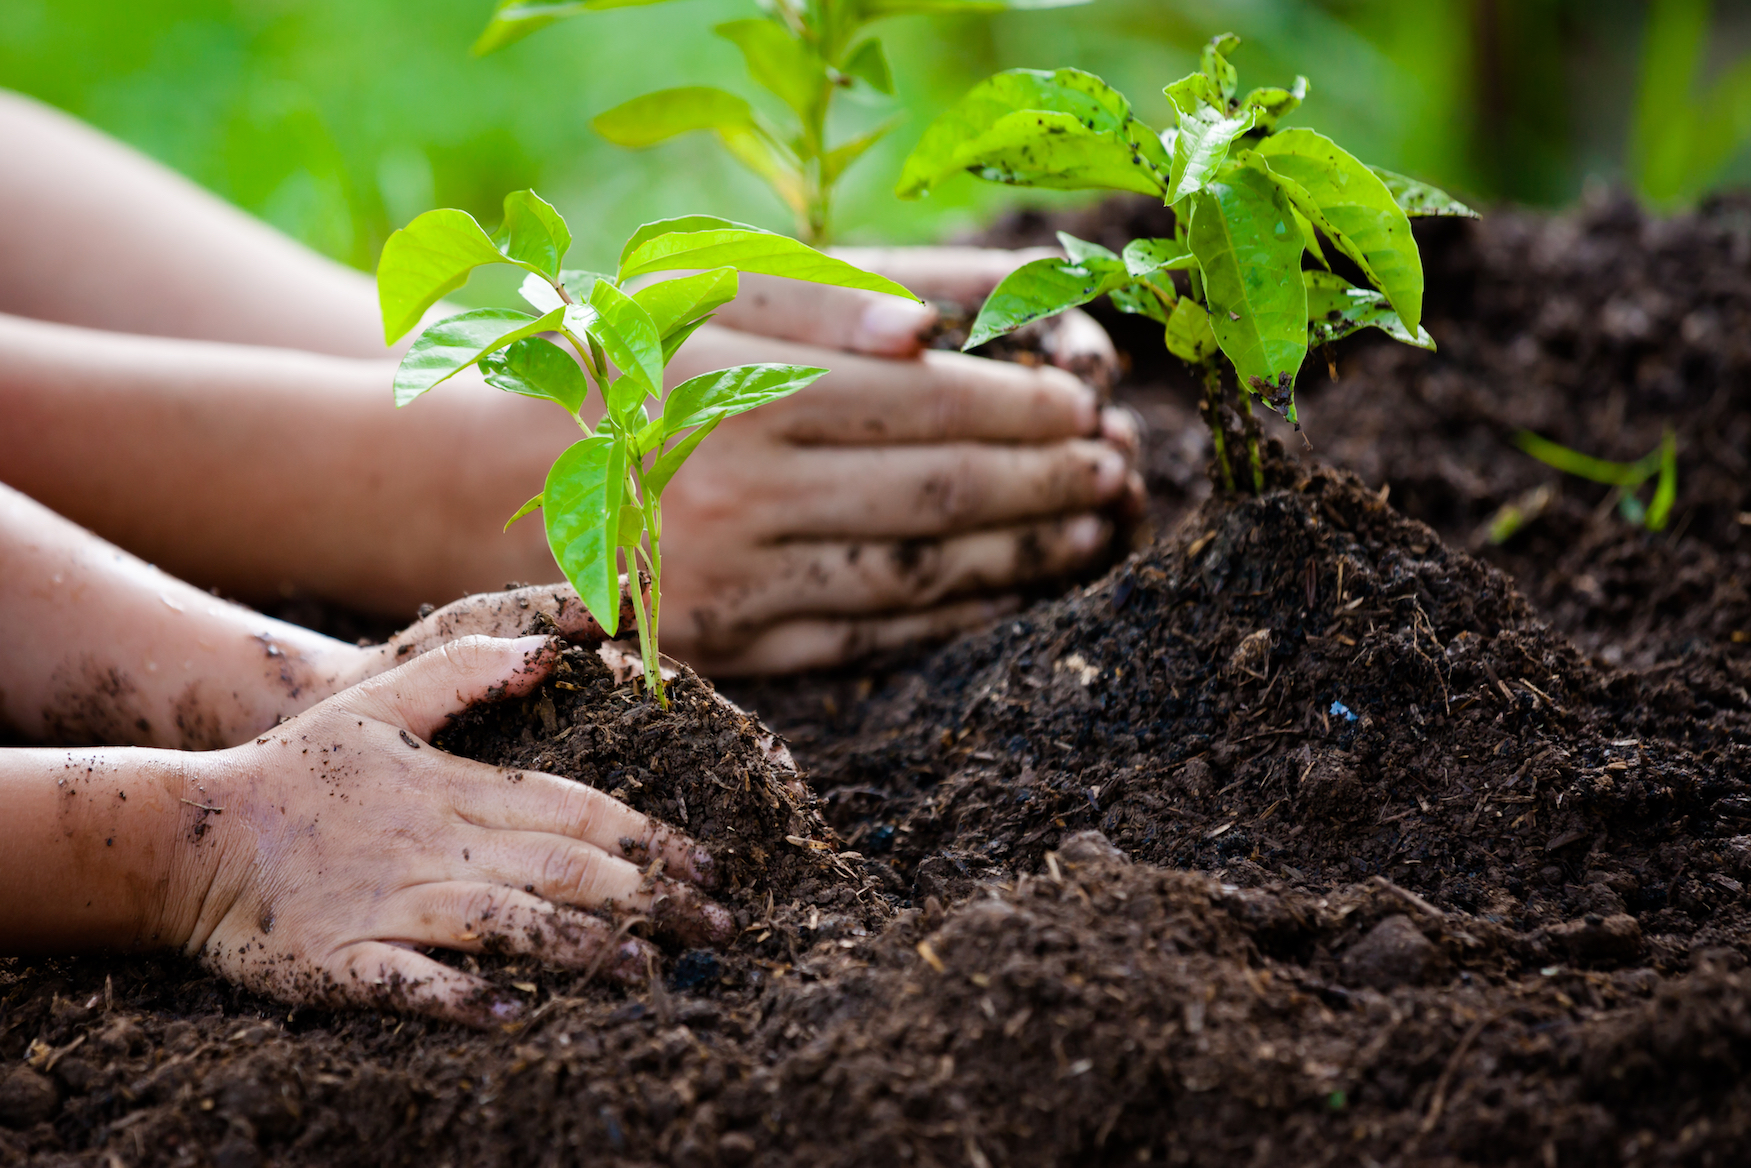 Planting trees as a PRODUCTIVE thing to do.